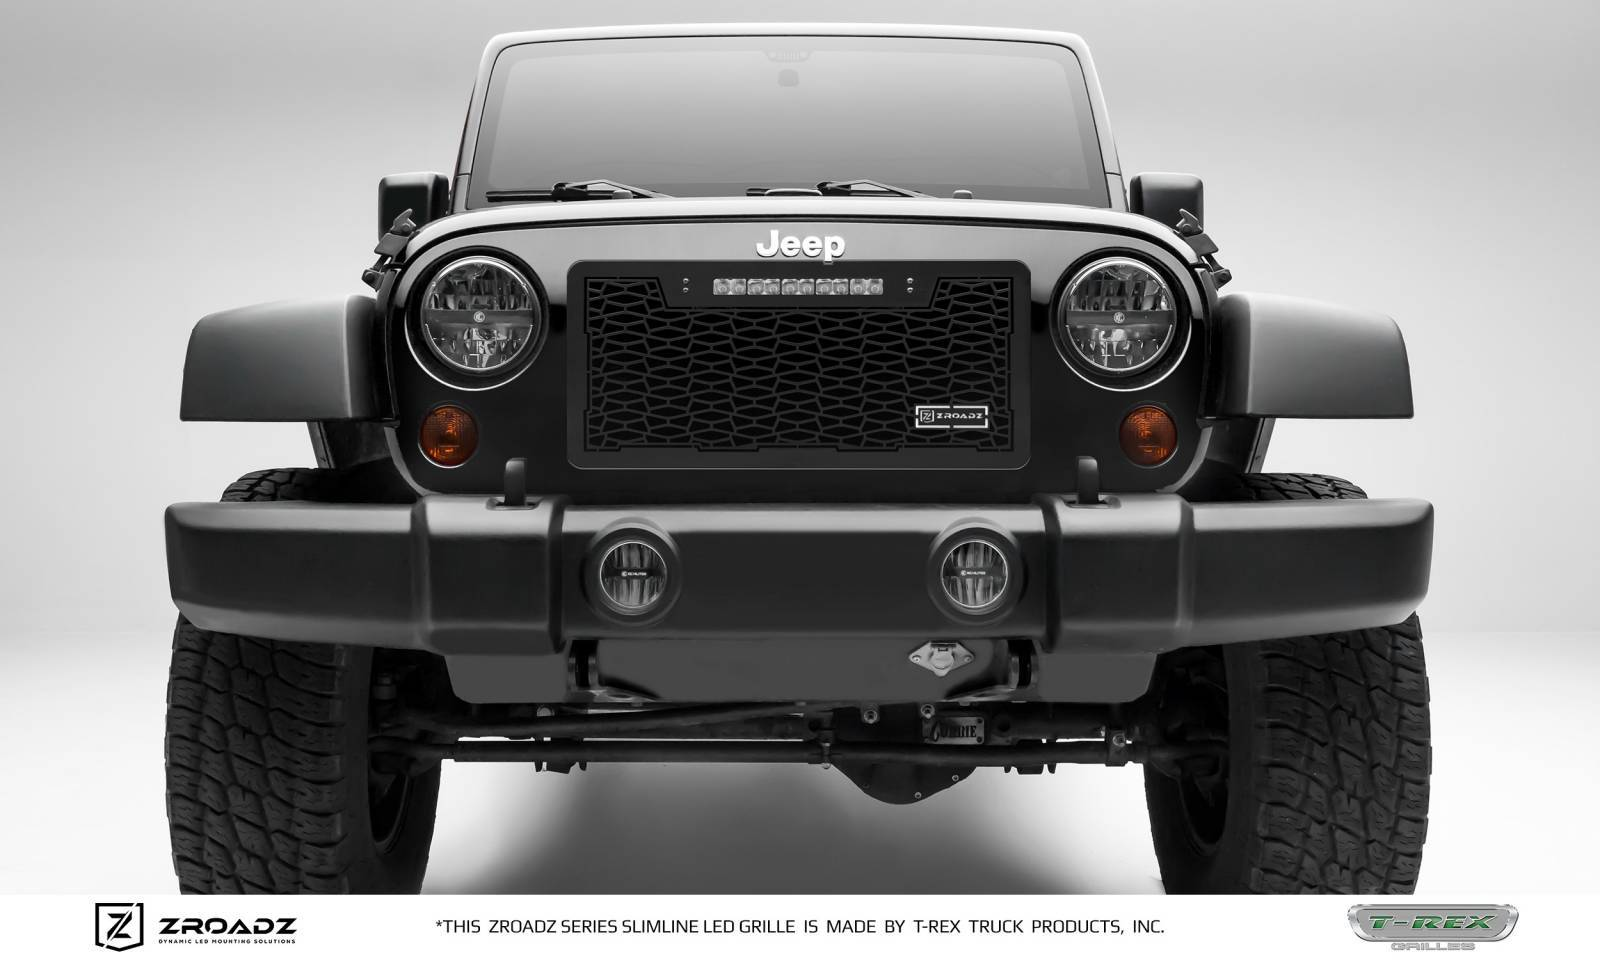 T-REX Grilles - Jeep Wrangler - ZROADZ Series - Main Insert - Grille w/ One 10 Inch Slim Line Single Row LED Light Bar - Part# Z314831-10T